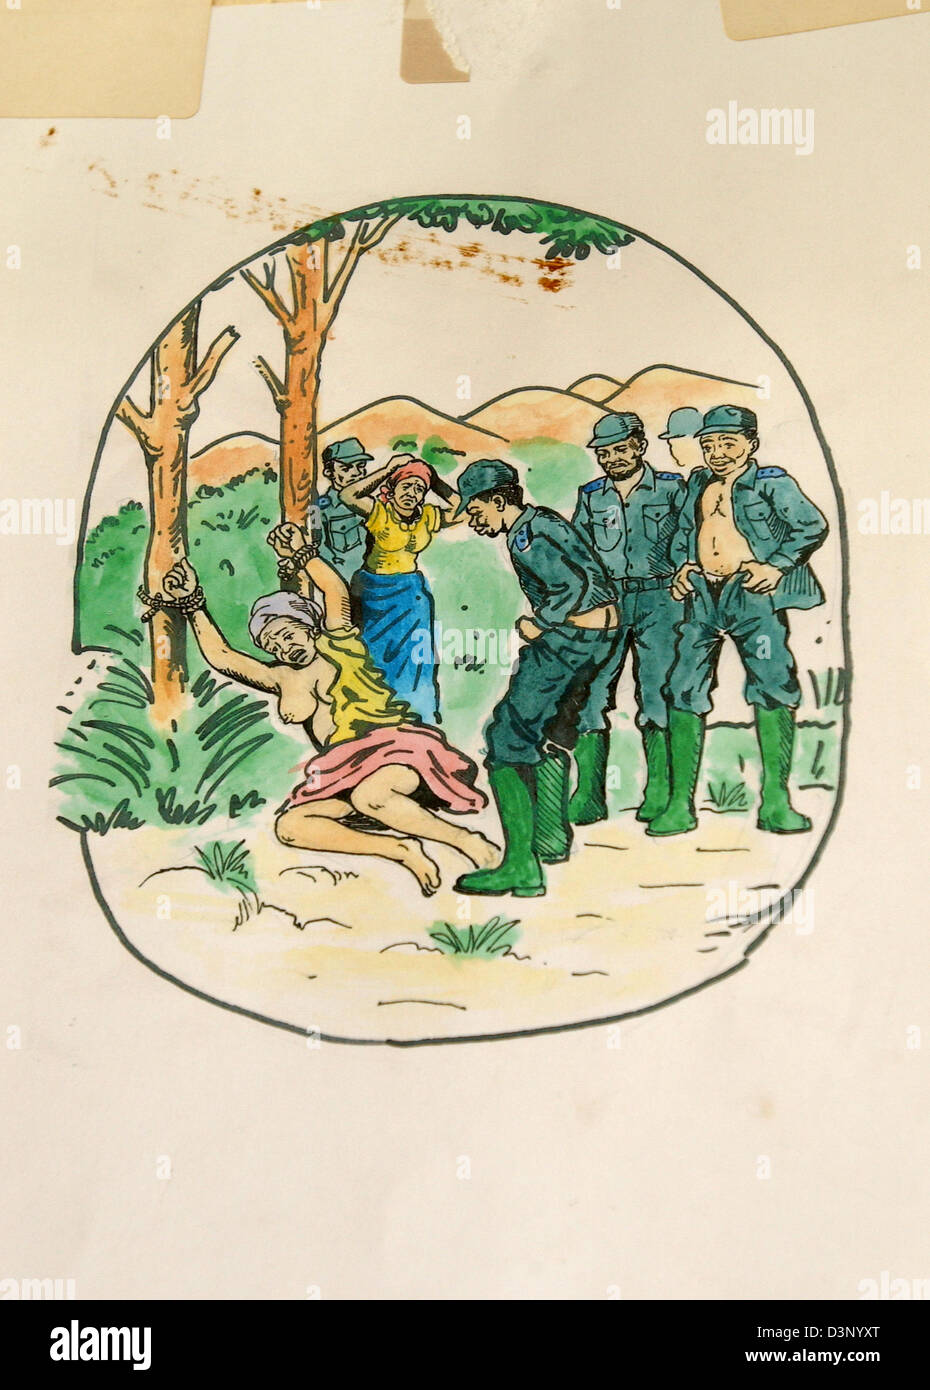 the picture shows a colour drawing found in a clinic depicting a